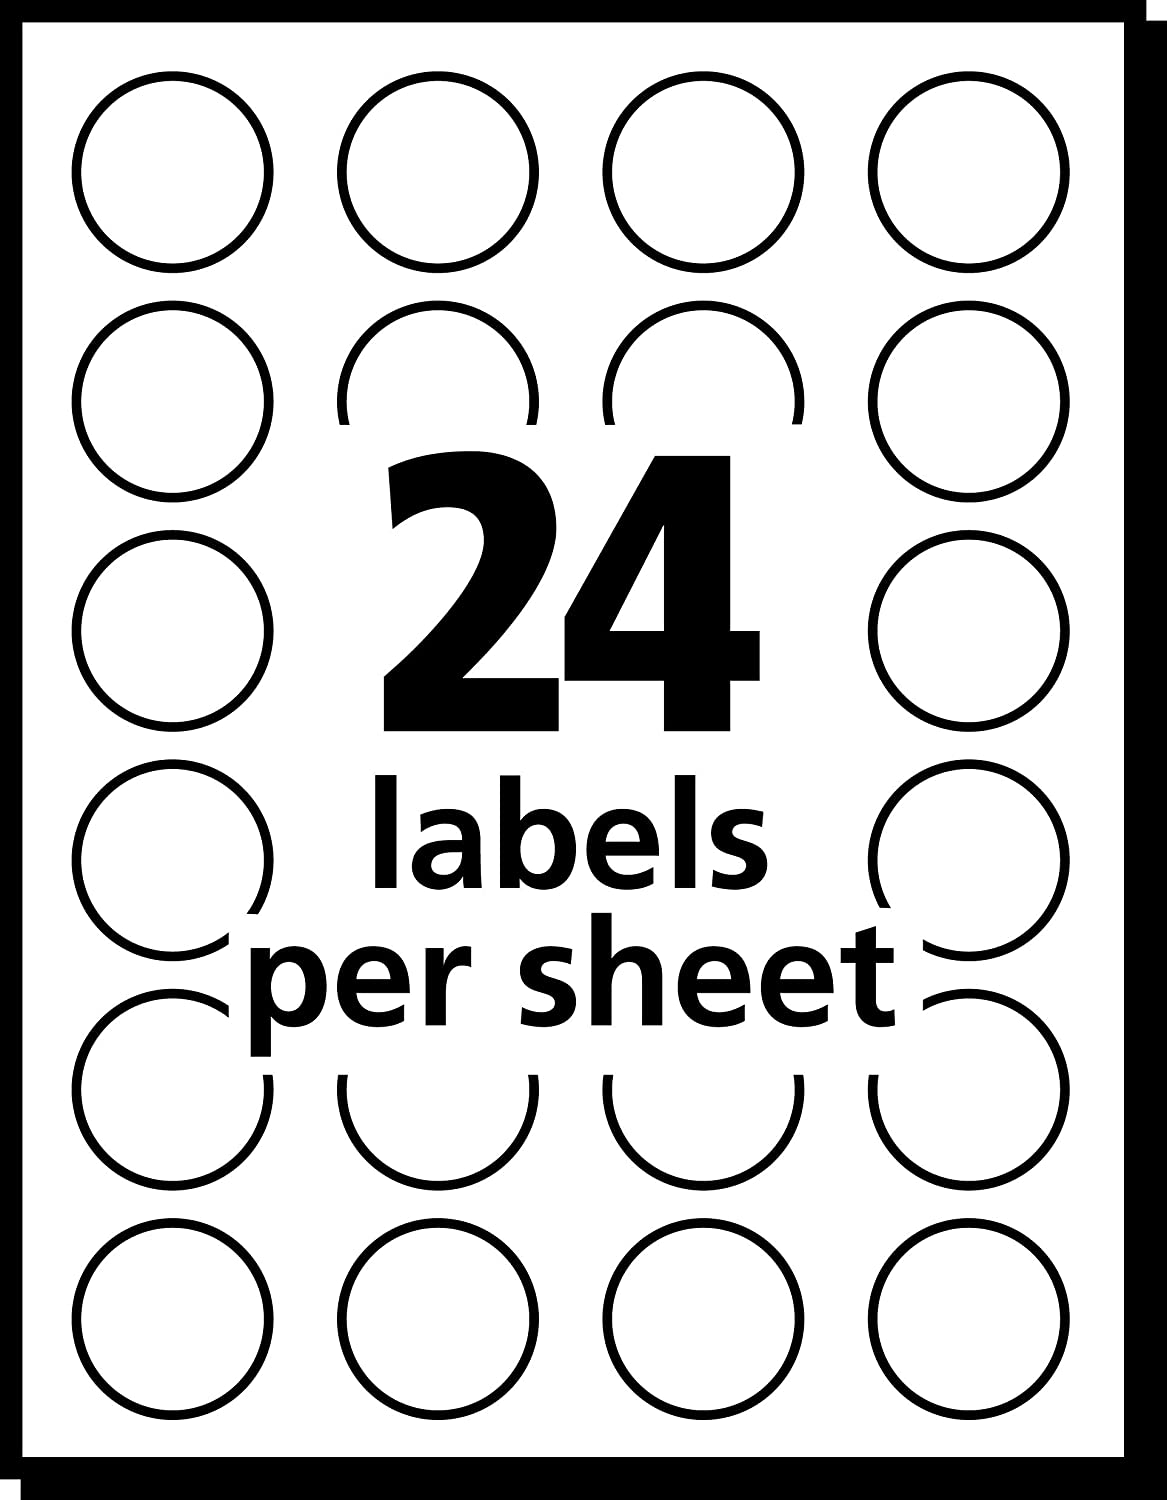 Avery Print/Write Self-Adhesive Removable Labels, 0.75 Inch Diameter, Dark Blue, 1, 008 per Pack (5469) : All Purpose Labels : Office Products